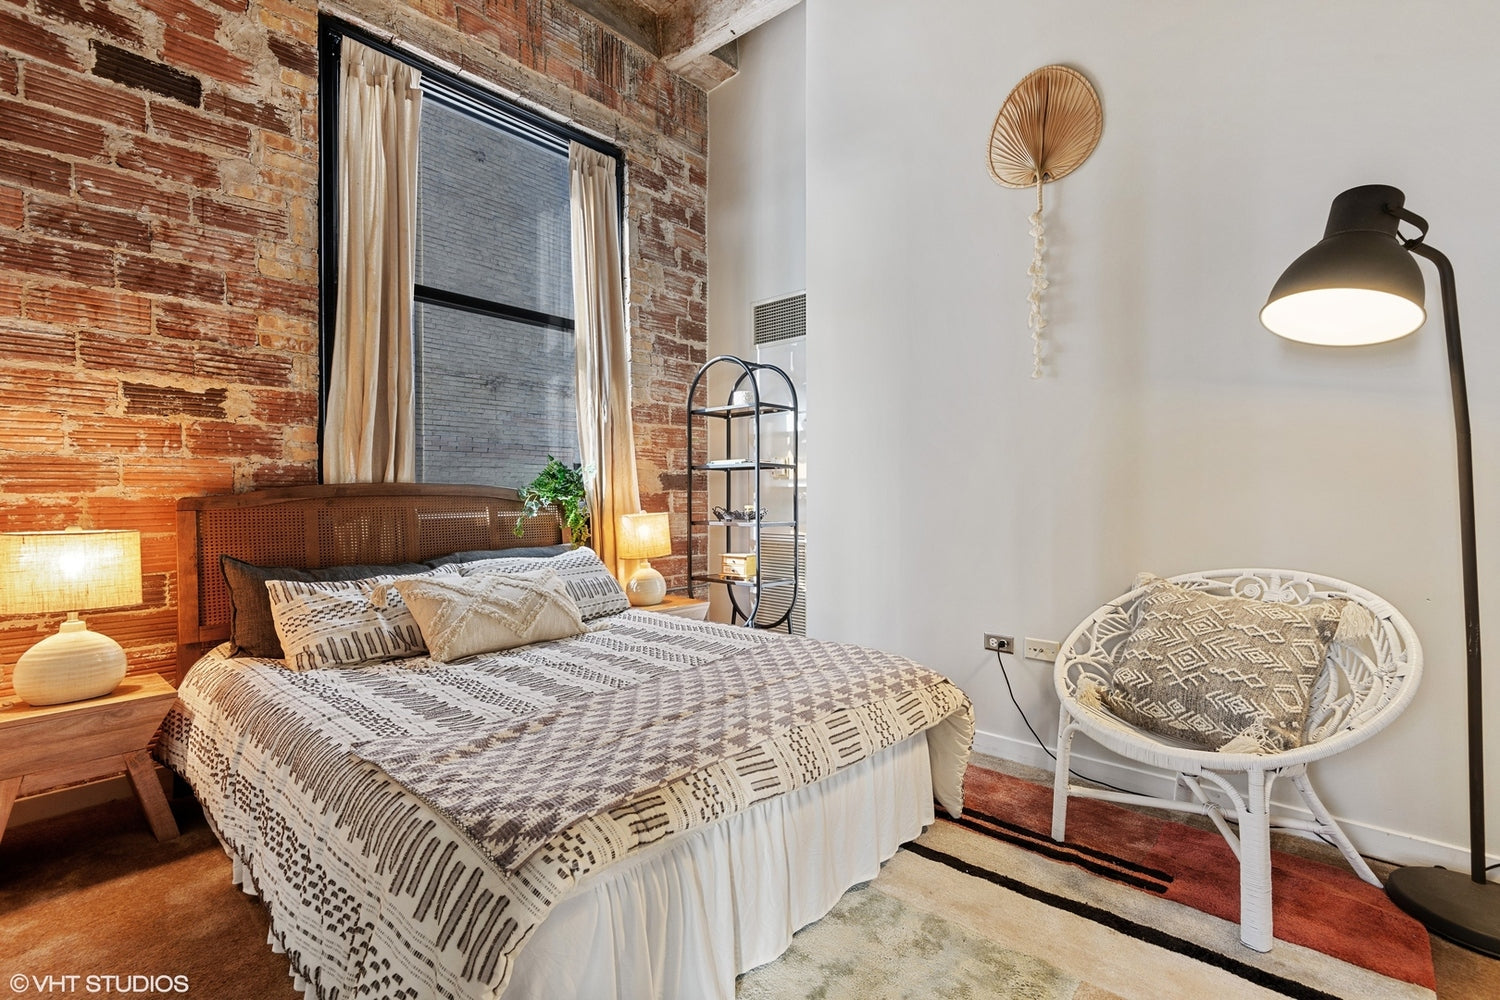 Eskell has home staging tips for all kinds of properties in the Chicago real estate market. See more real estate staging at Eskell.com.